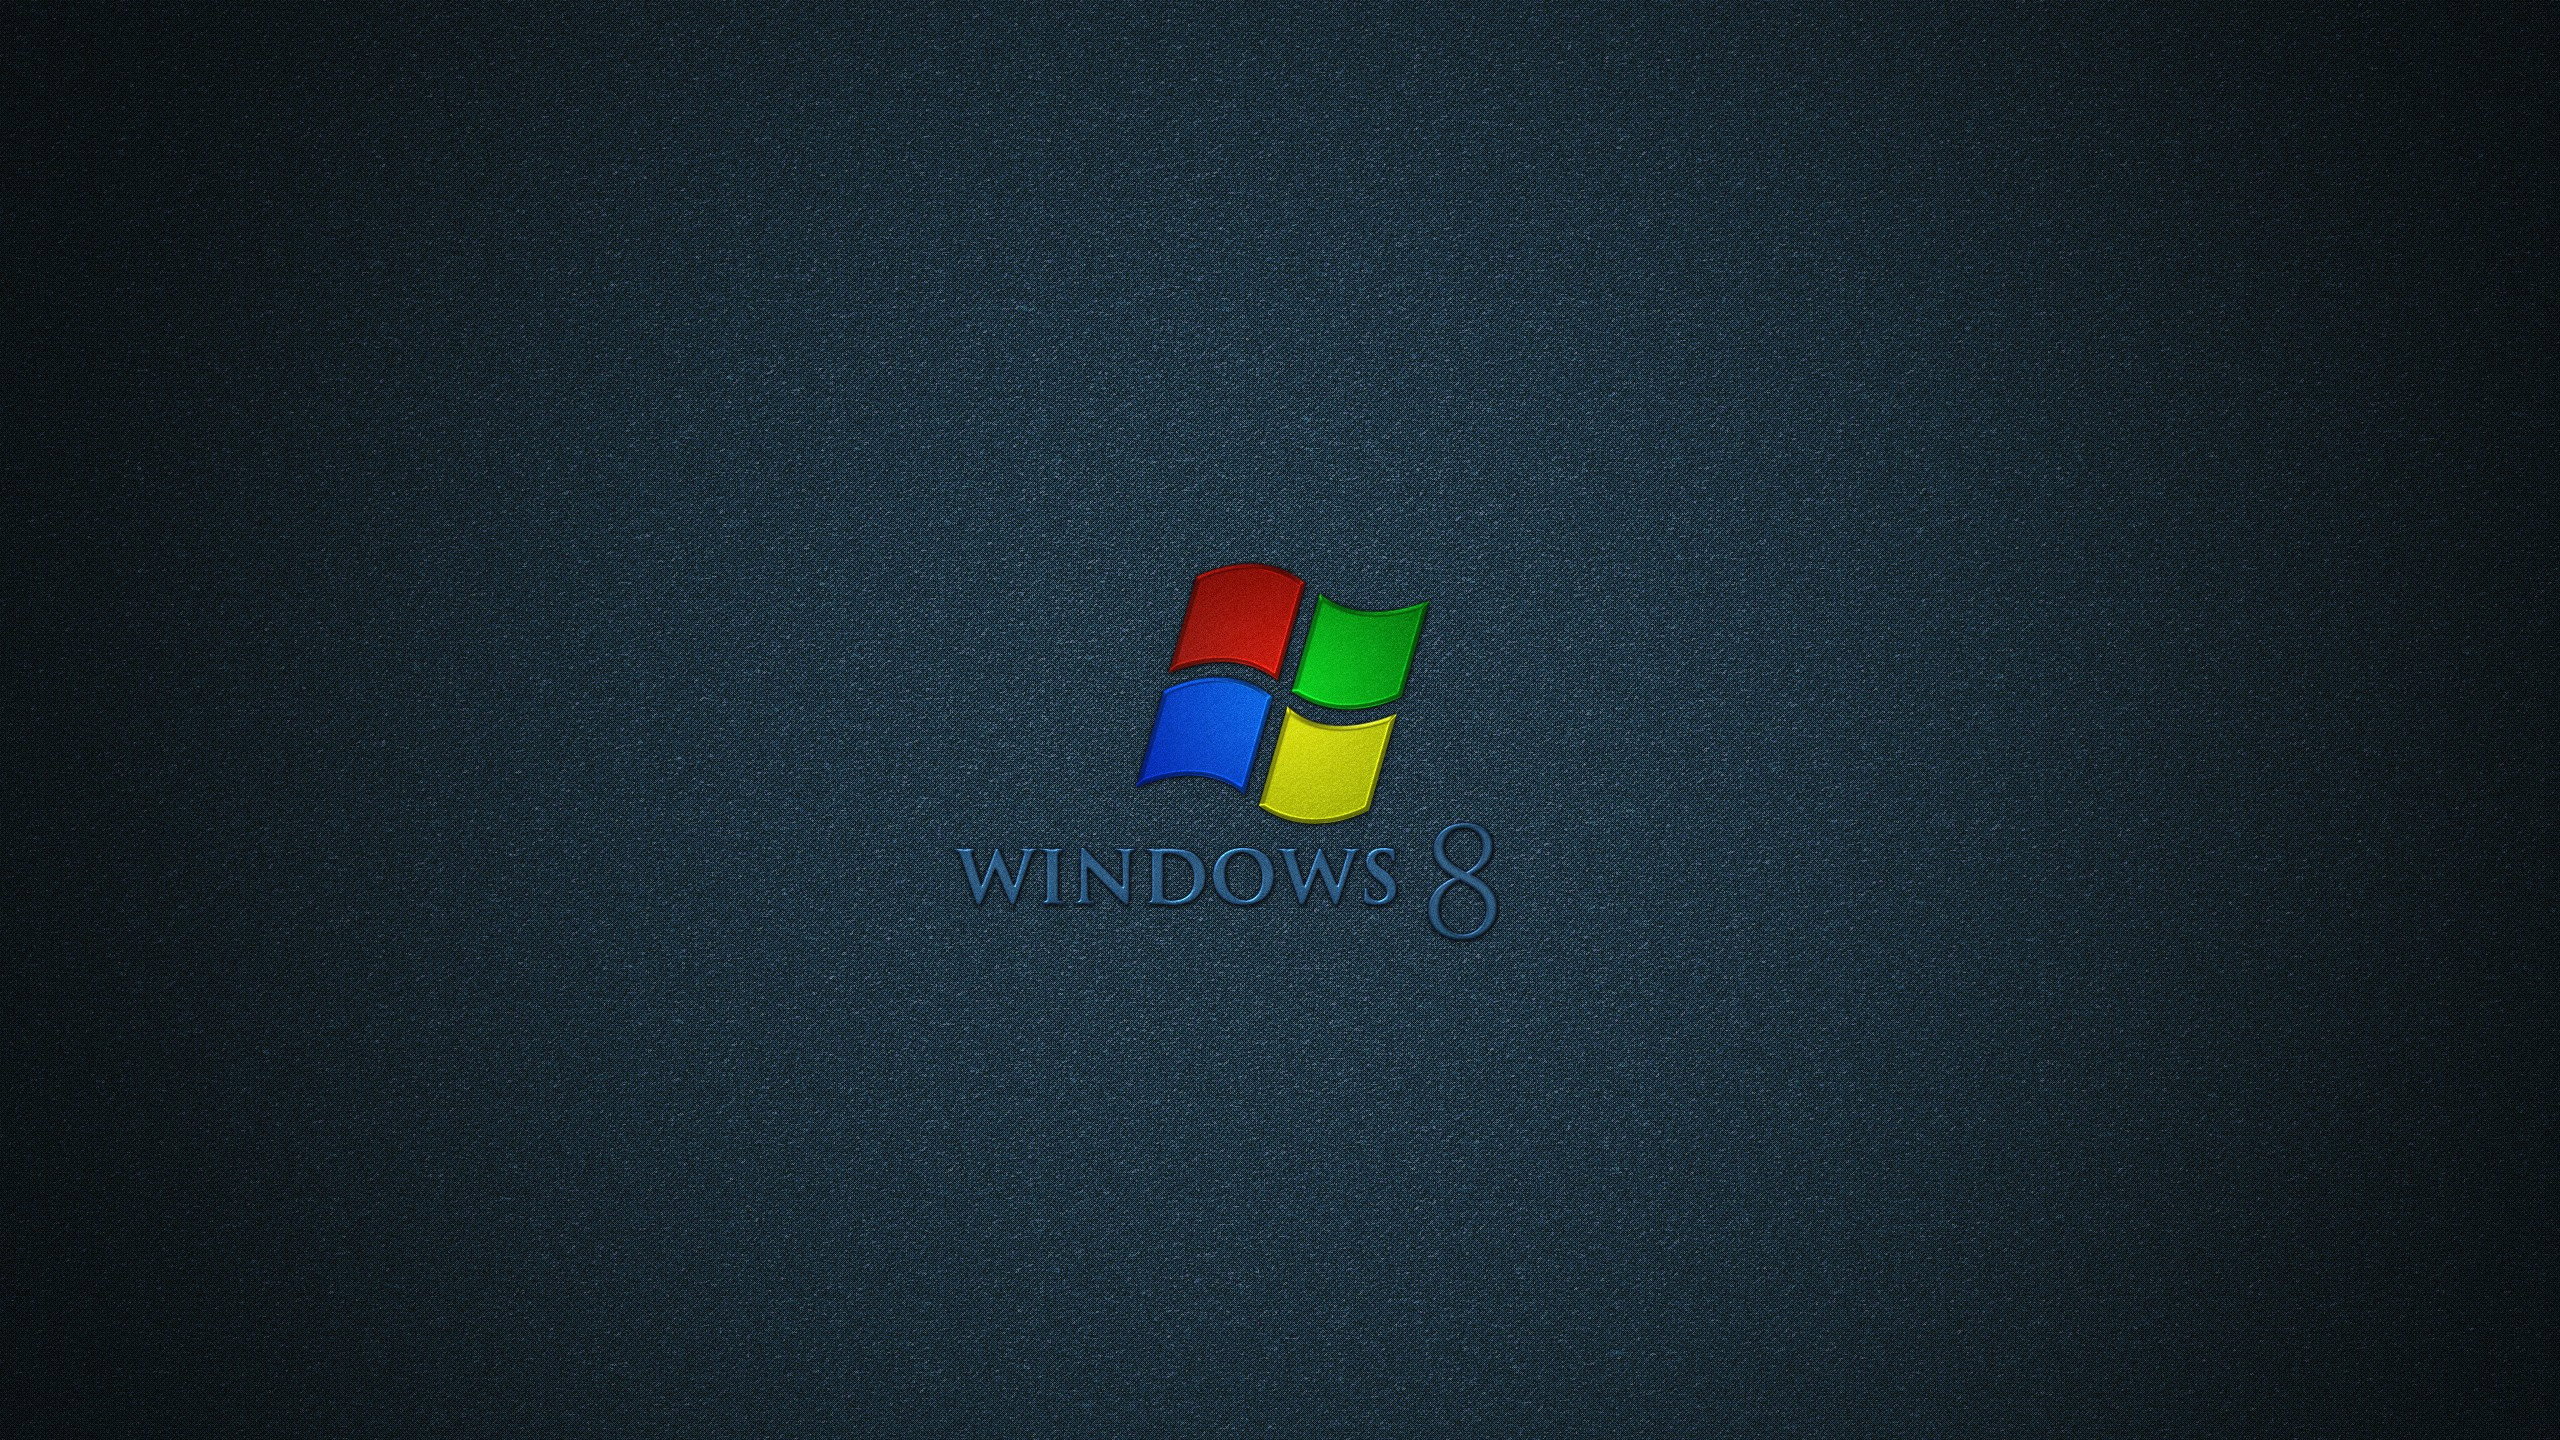 3d And Hd Windows 8 Wallpapers The Globe Press